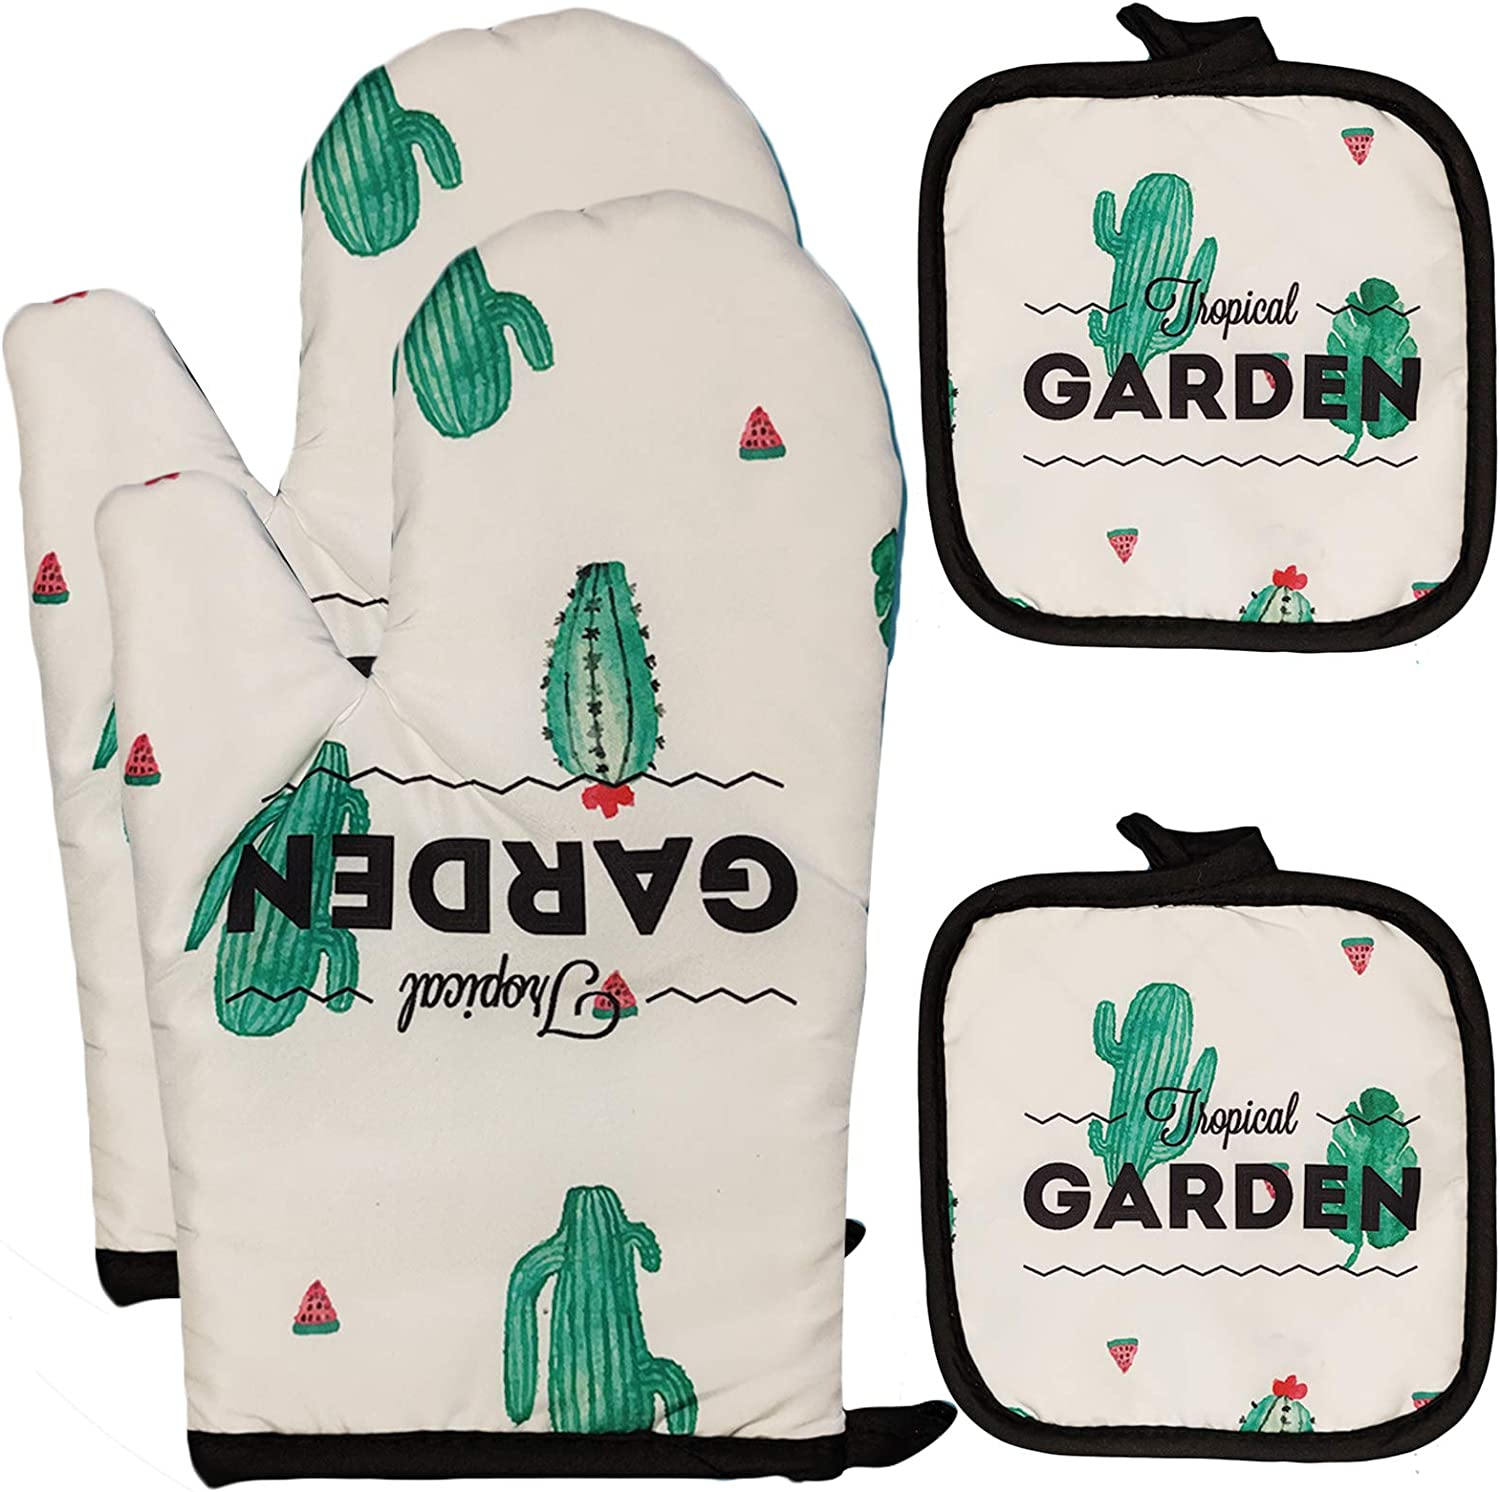 FSTIKO Garden Cactus Oven Mitts and Potholders 4 Pieces Set, Kitchen Linen Set BBQ Gloves-Oven Mitts High Heat Resistant Cotton Potholder for Cooking Baking Grilling